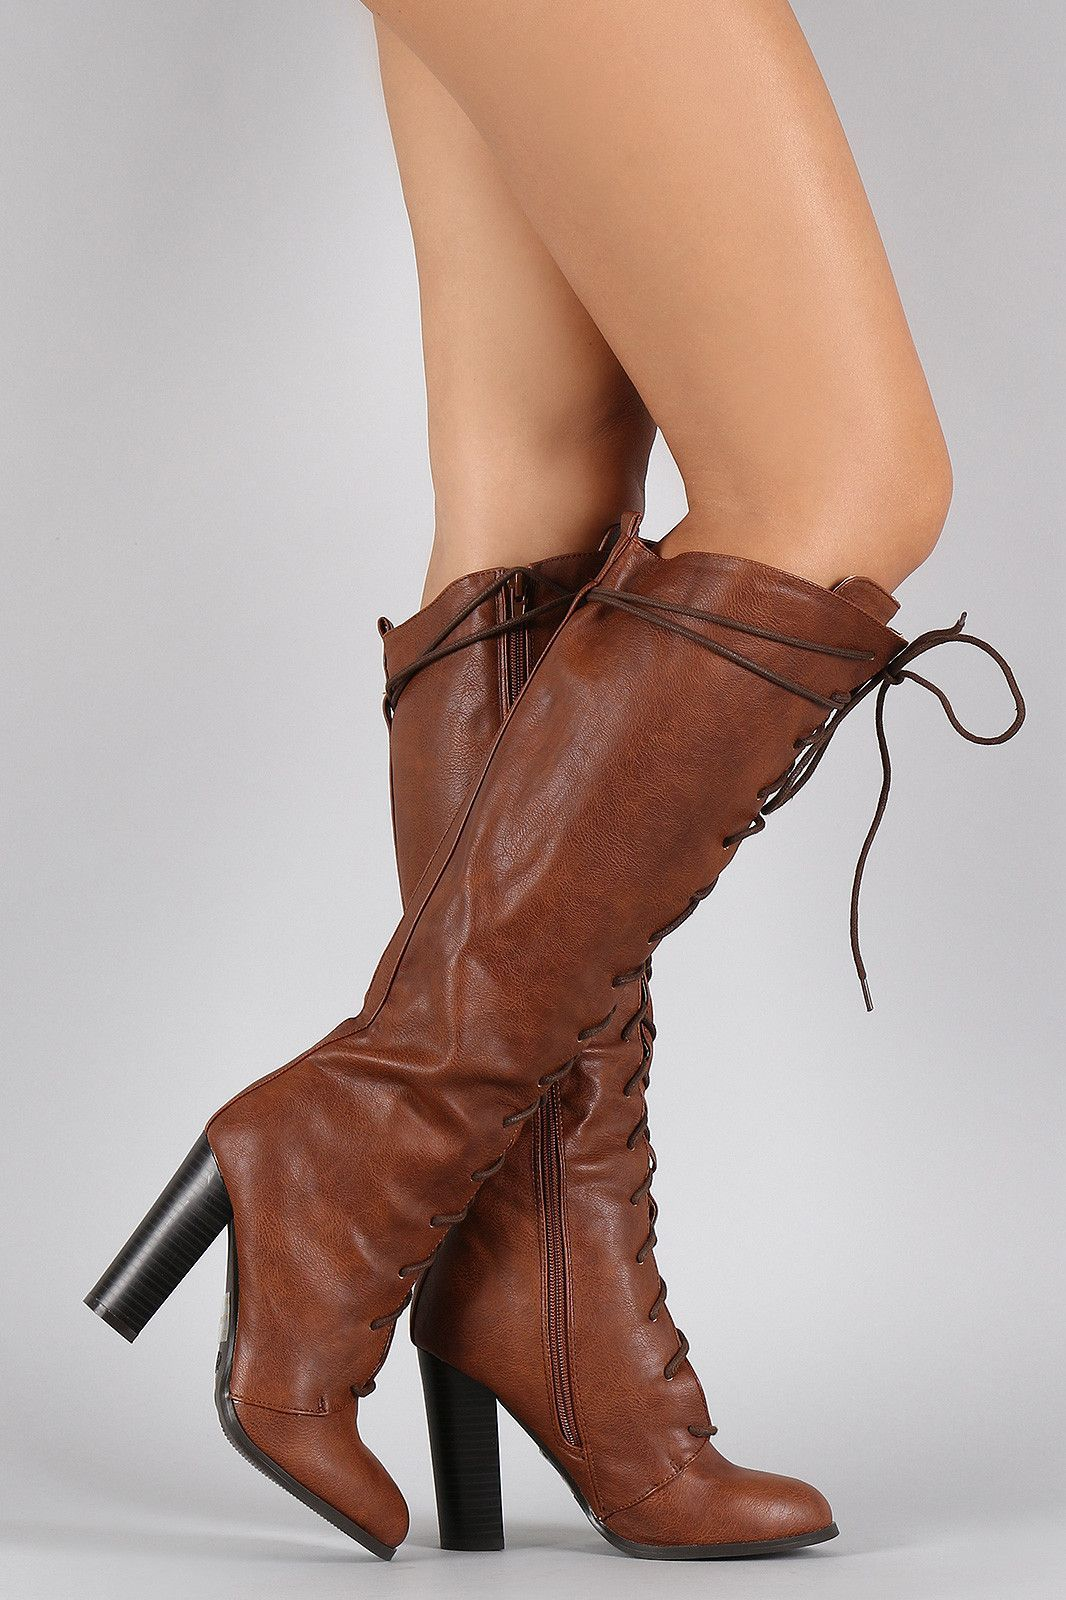 095315254d6 Qupid Round Toe Lace Up Heeled Combat Knee High Boot